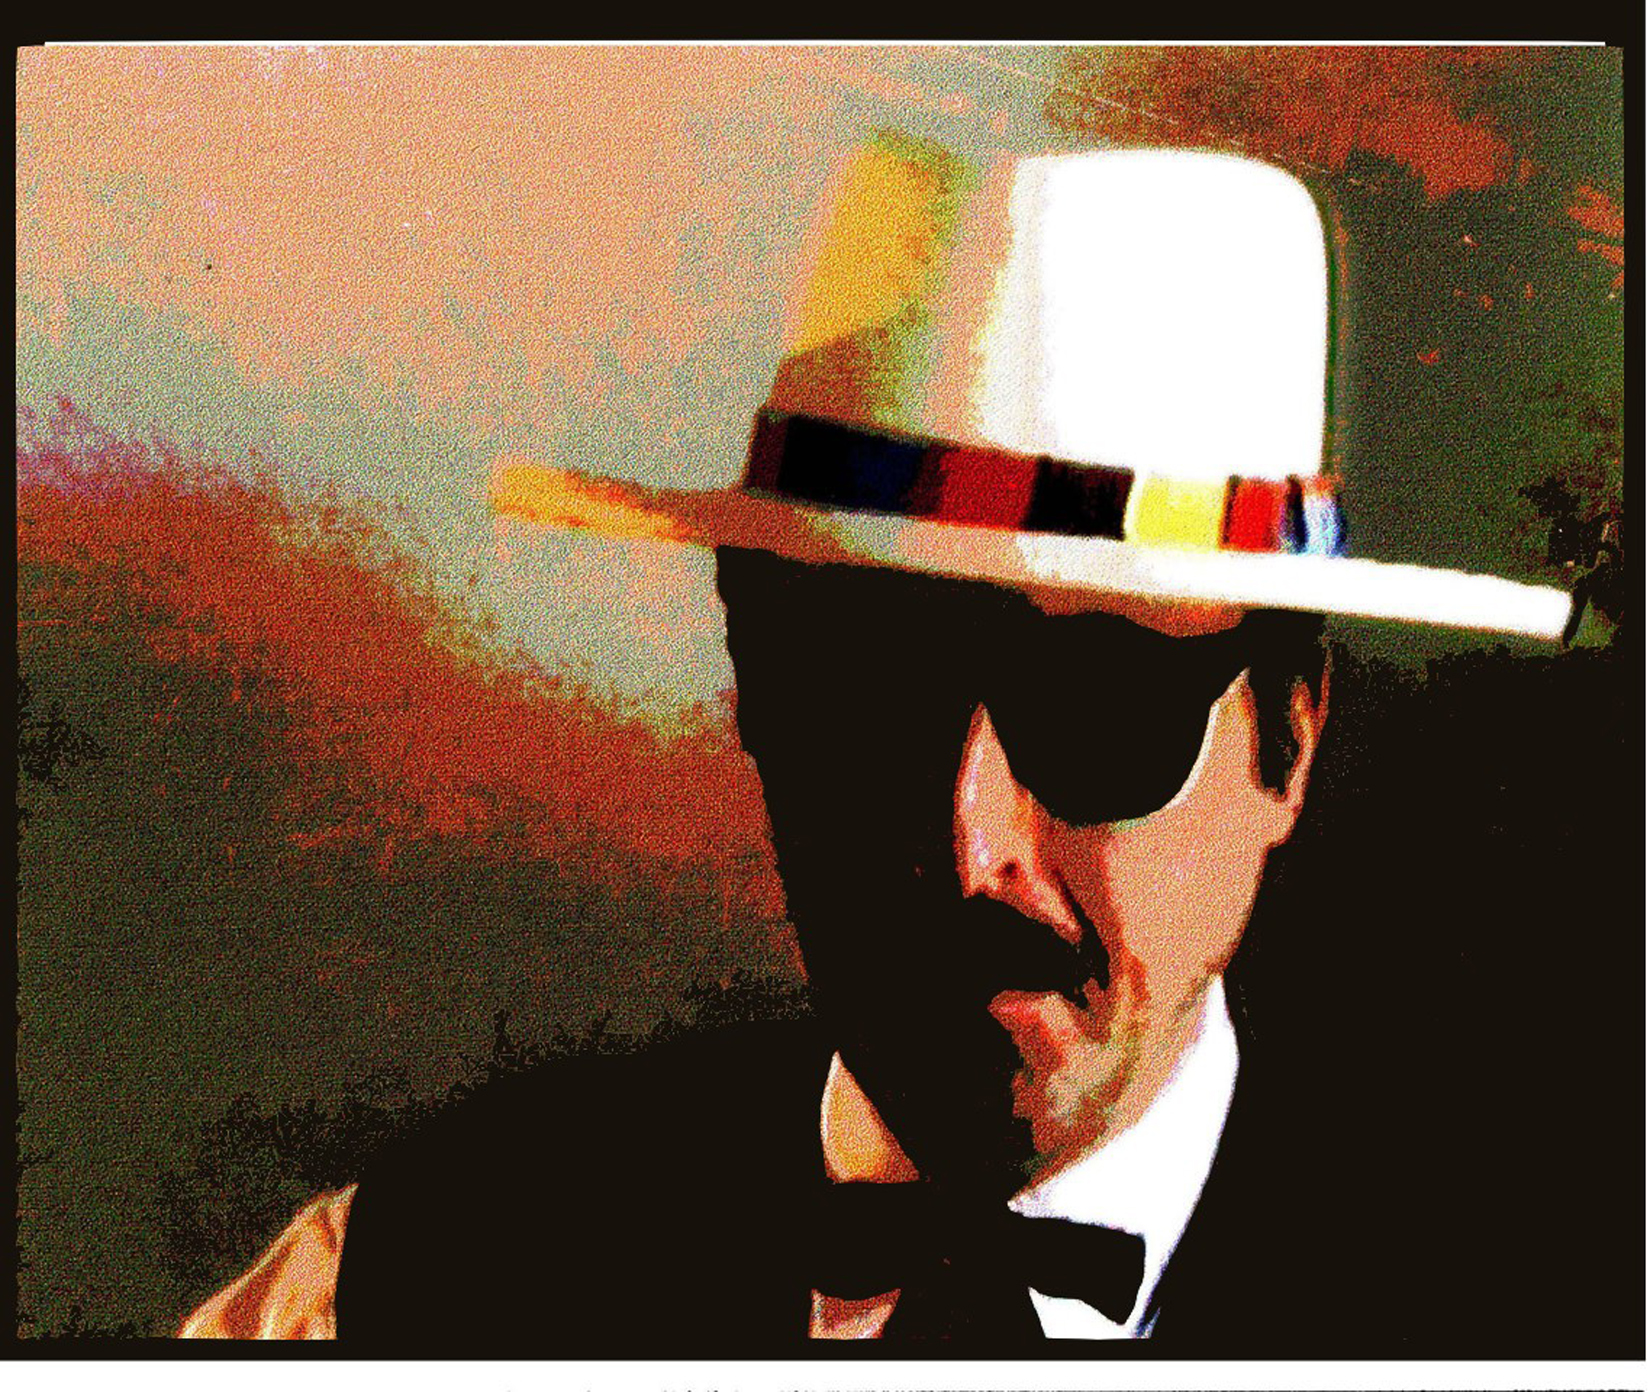 leon redbone performs at montgomery college on october 1 inside mc online. Black Bedroom Furniture Sets. Home Design Ideas